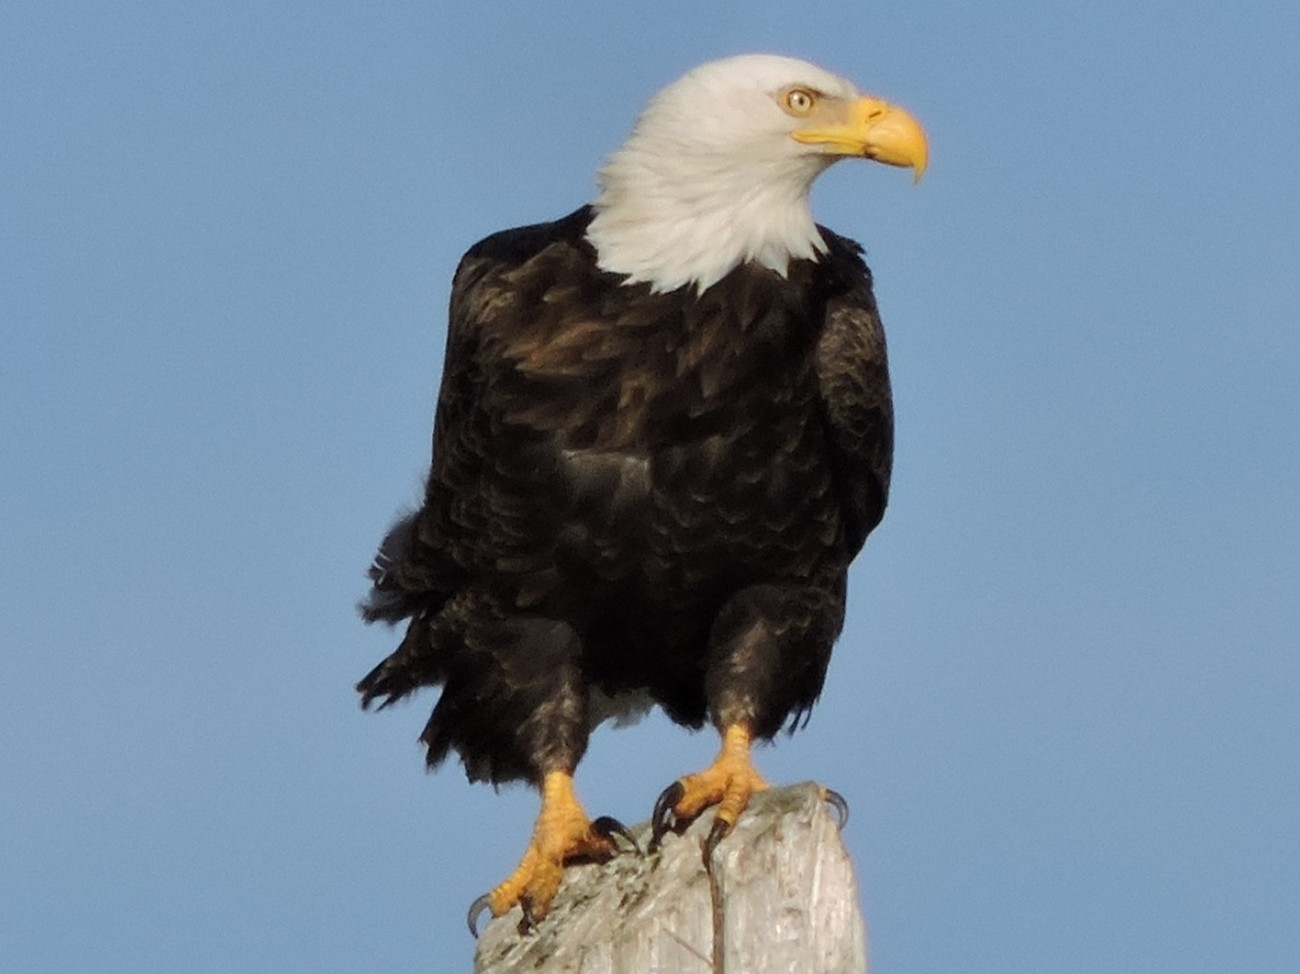 talons griped, standing 20 feet tall on a powerline post facing piercing winds, looking towards the flowing river and open fields.